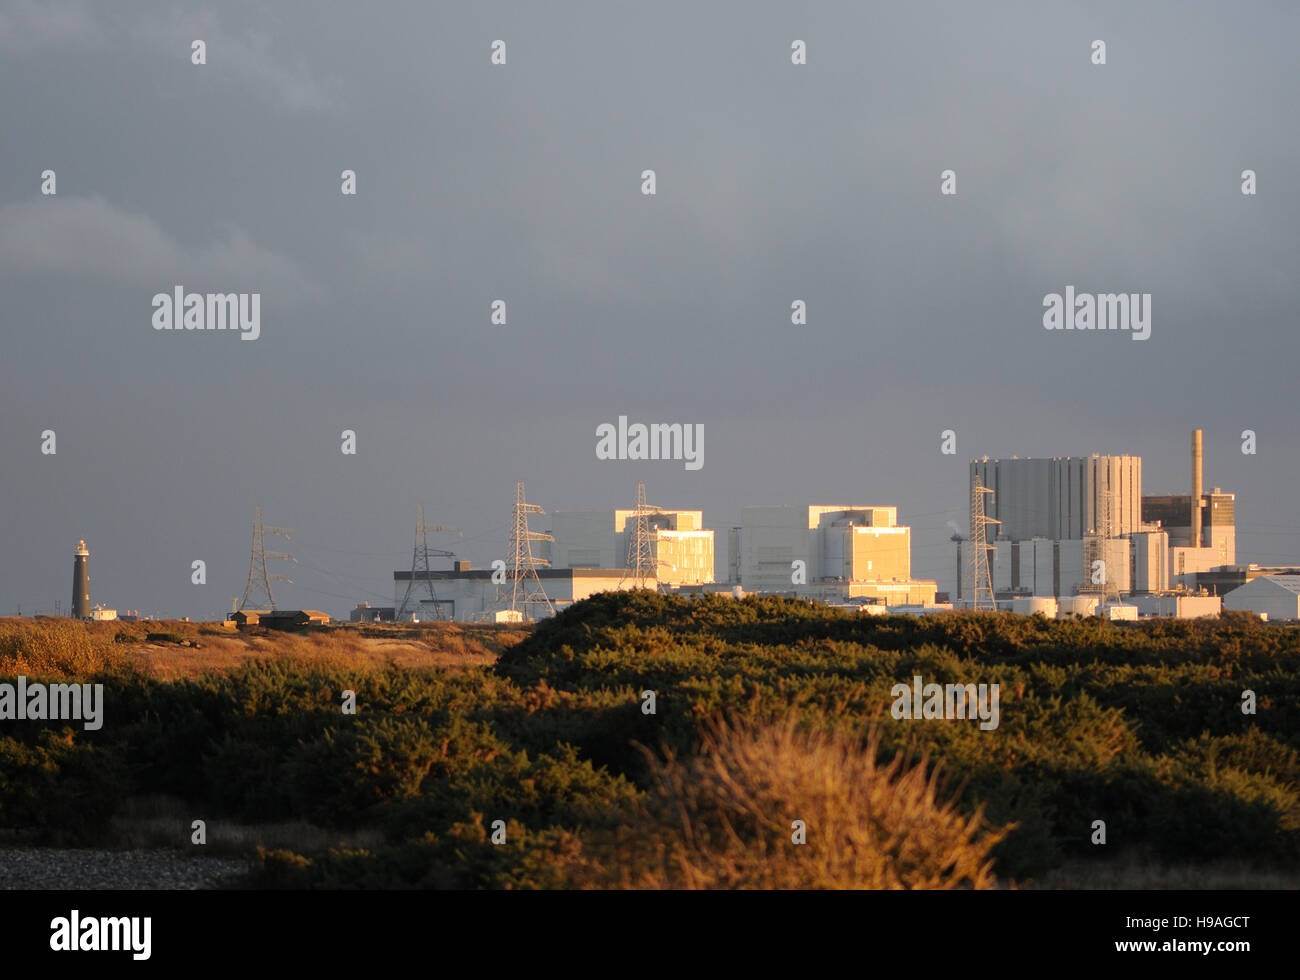 Dungeness nuclear power station with Dungeness Nature Reserve in the foreground. Dungeness, Kent, UK - Stock Image